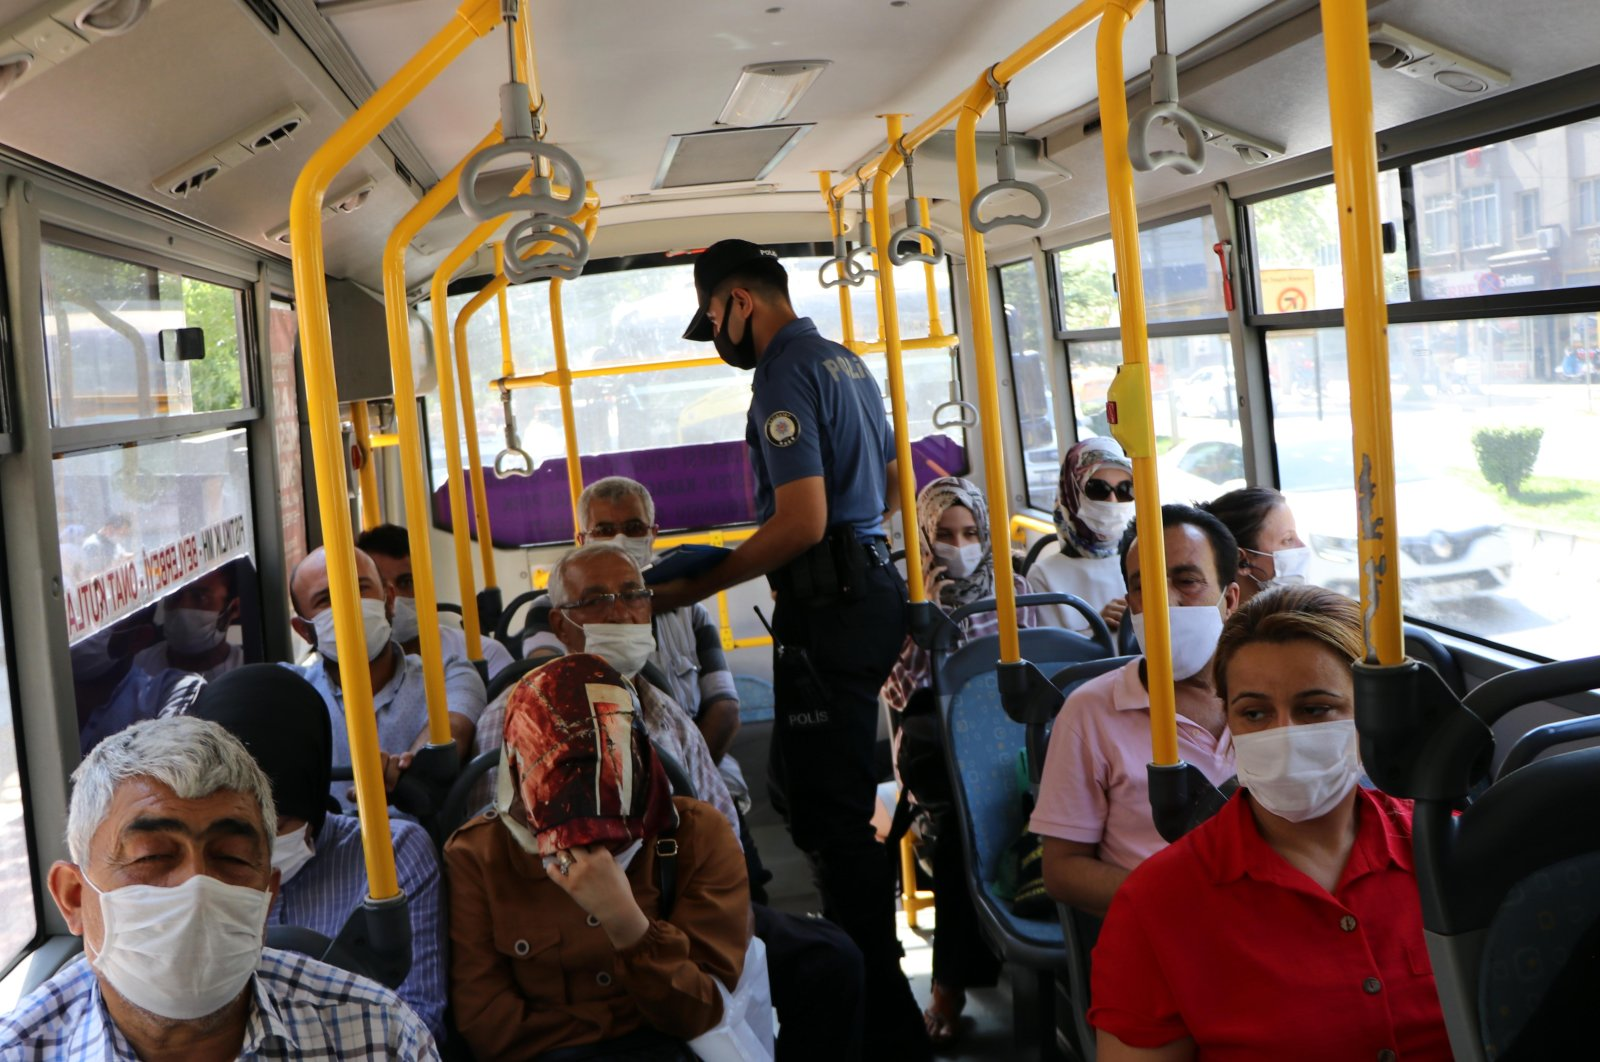 A police officer checks passengers in a bus as part of inspections against COVID-19 pandemic, in Gaziantep, Turkey, July 8, 2020. (DHA Photo)